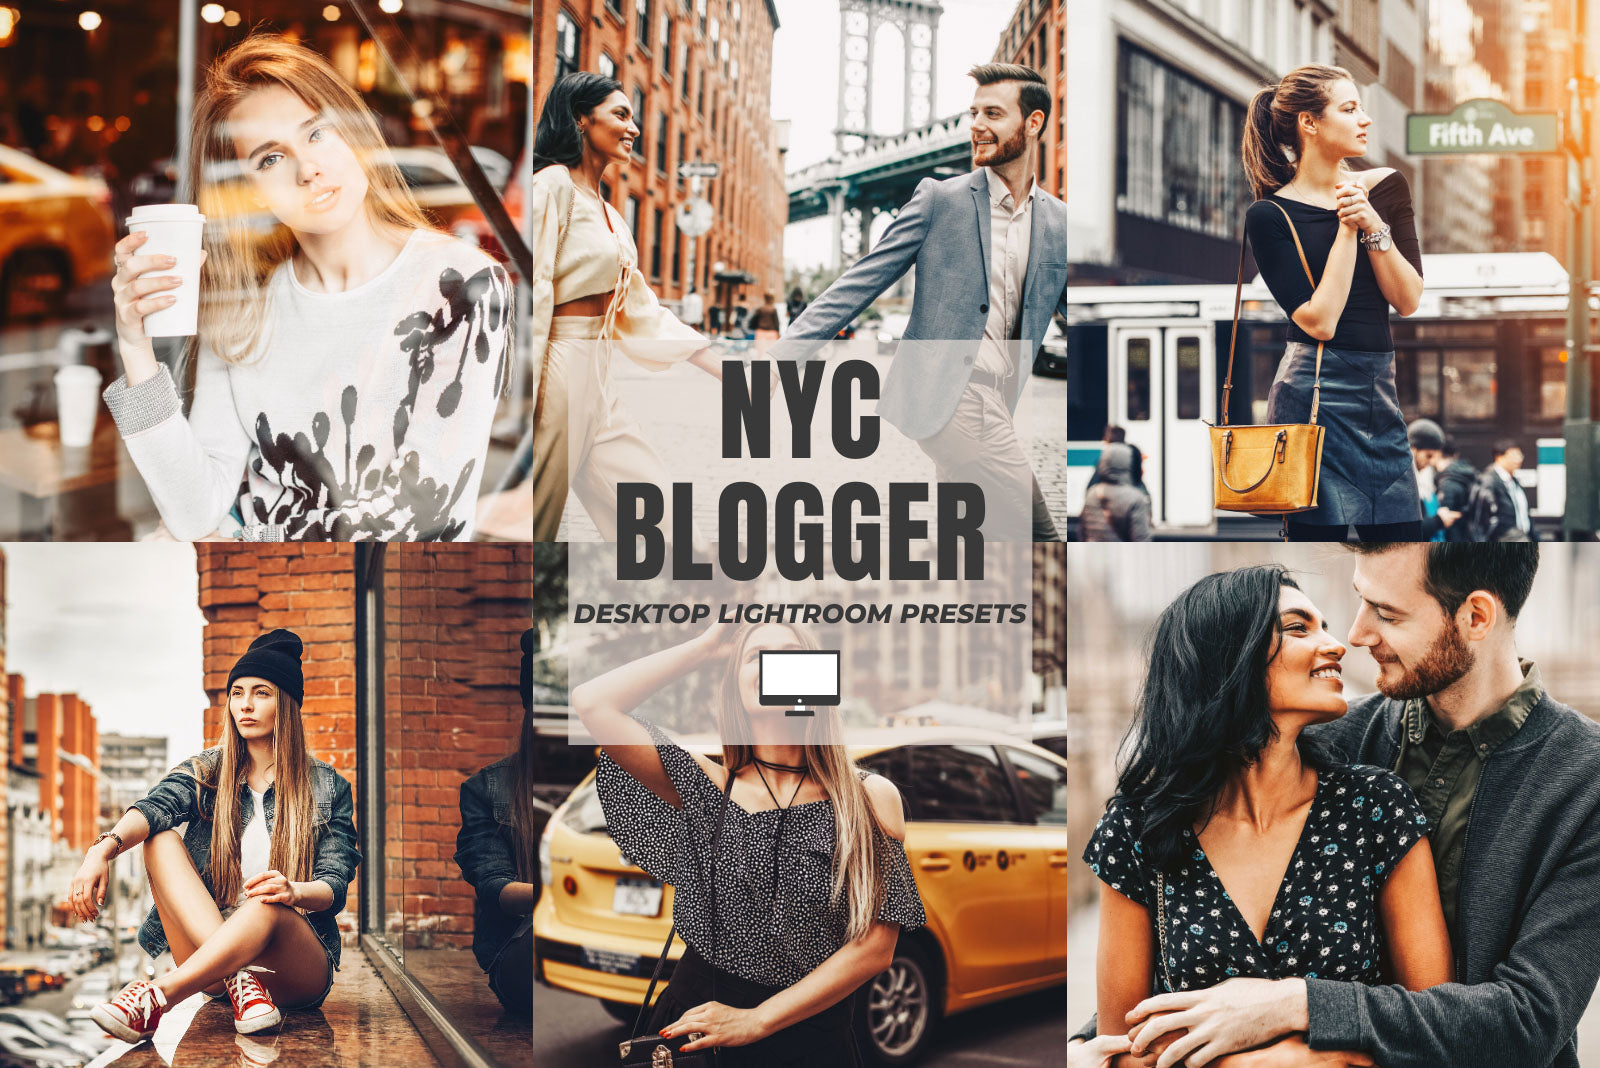 NYC BLOGGER DESKTOP LIGHTROOM PRESETS by The Viral Presets